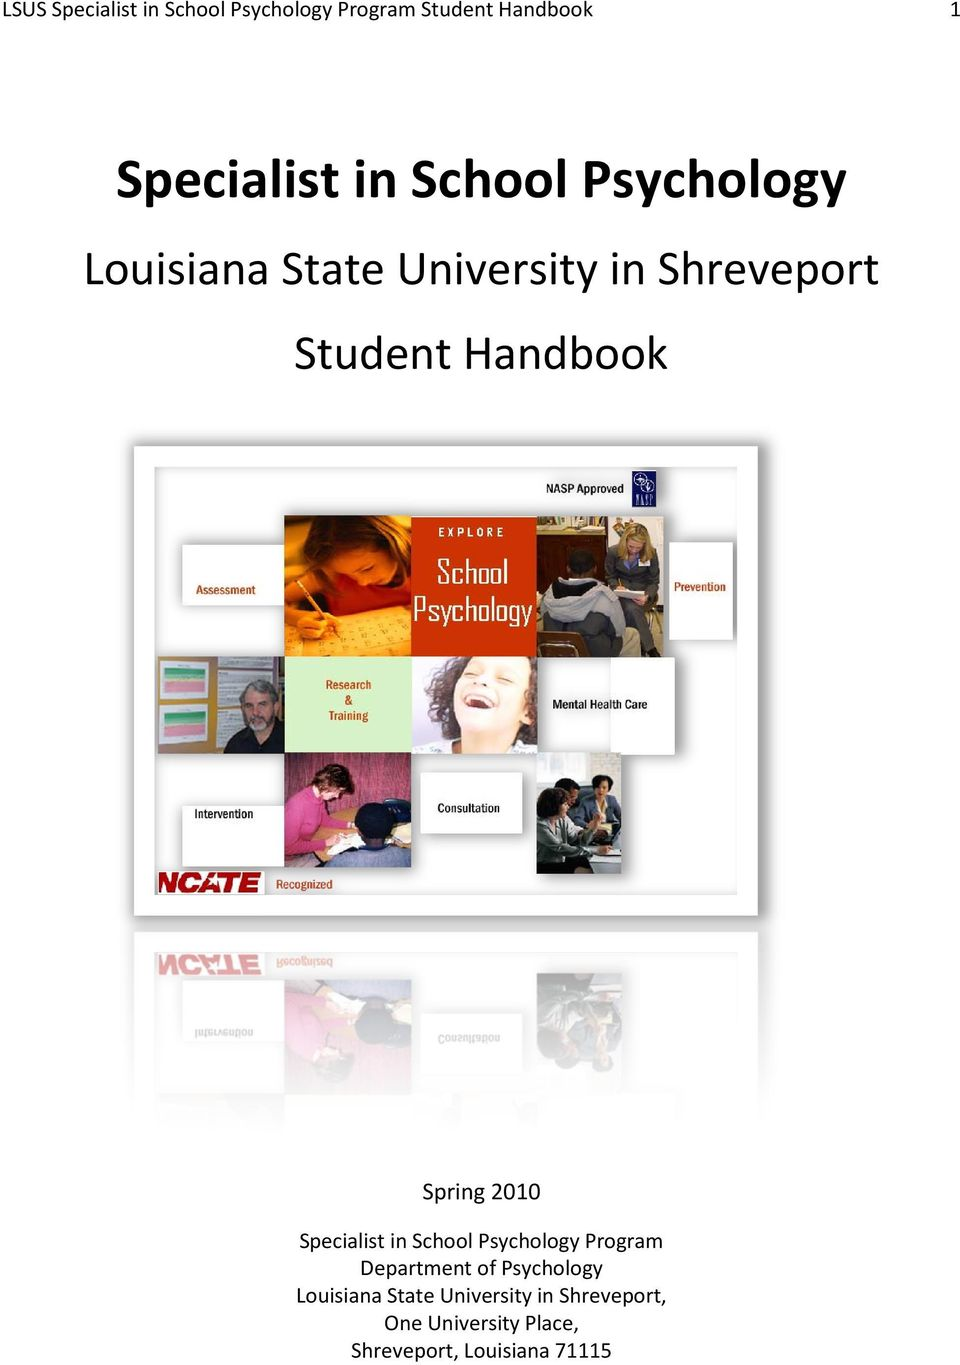 Spring 2010 Specialist in School Psychology Program Department of Psychology